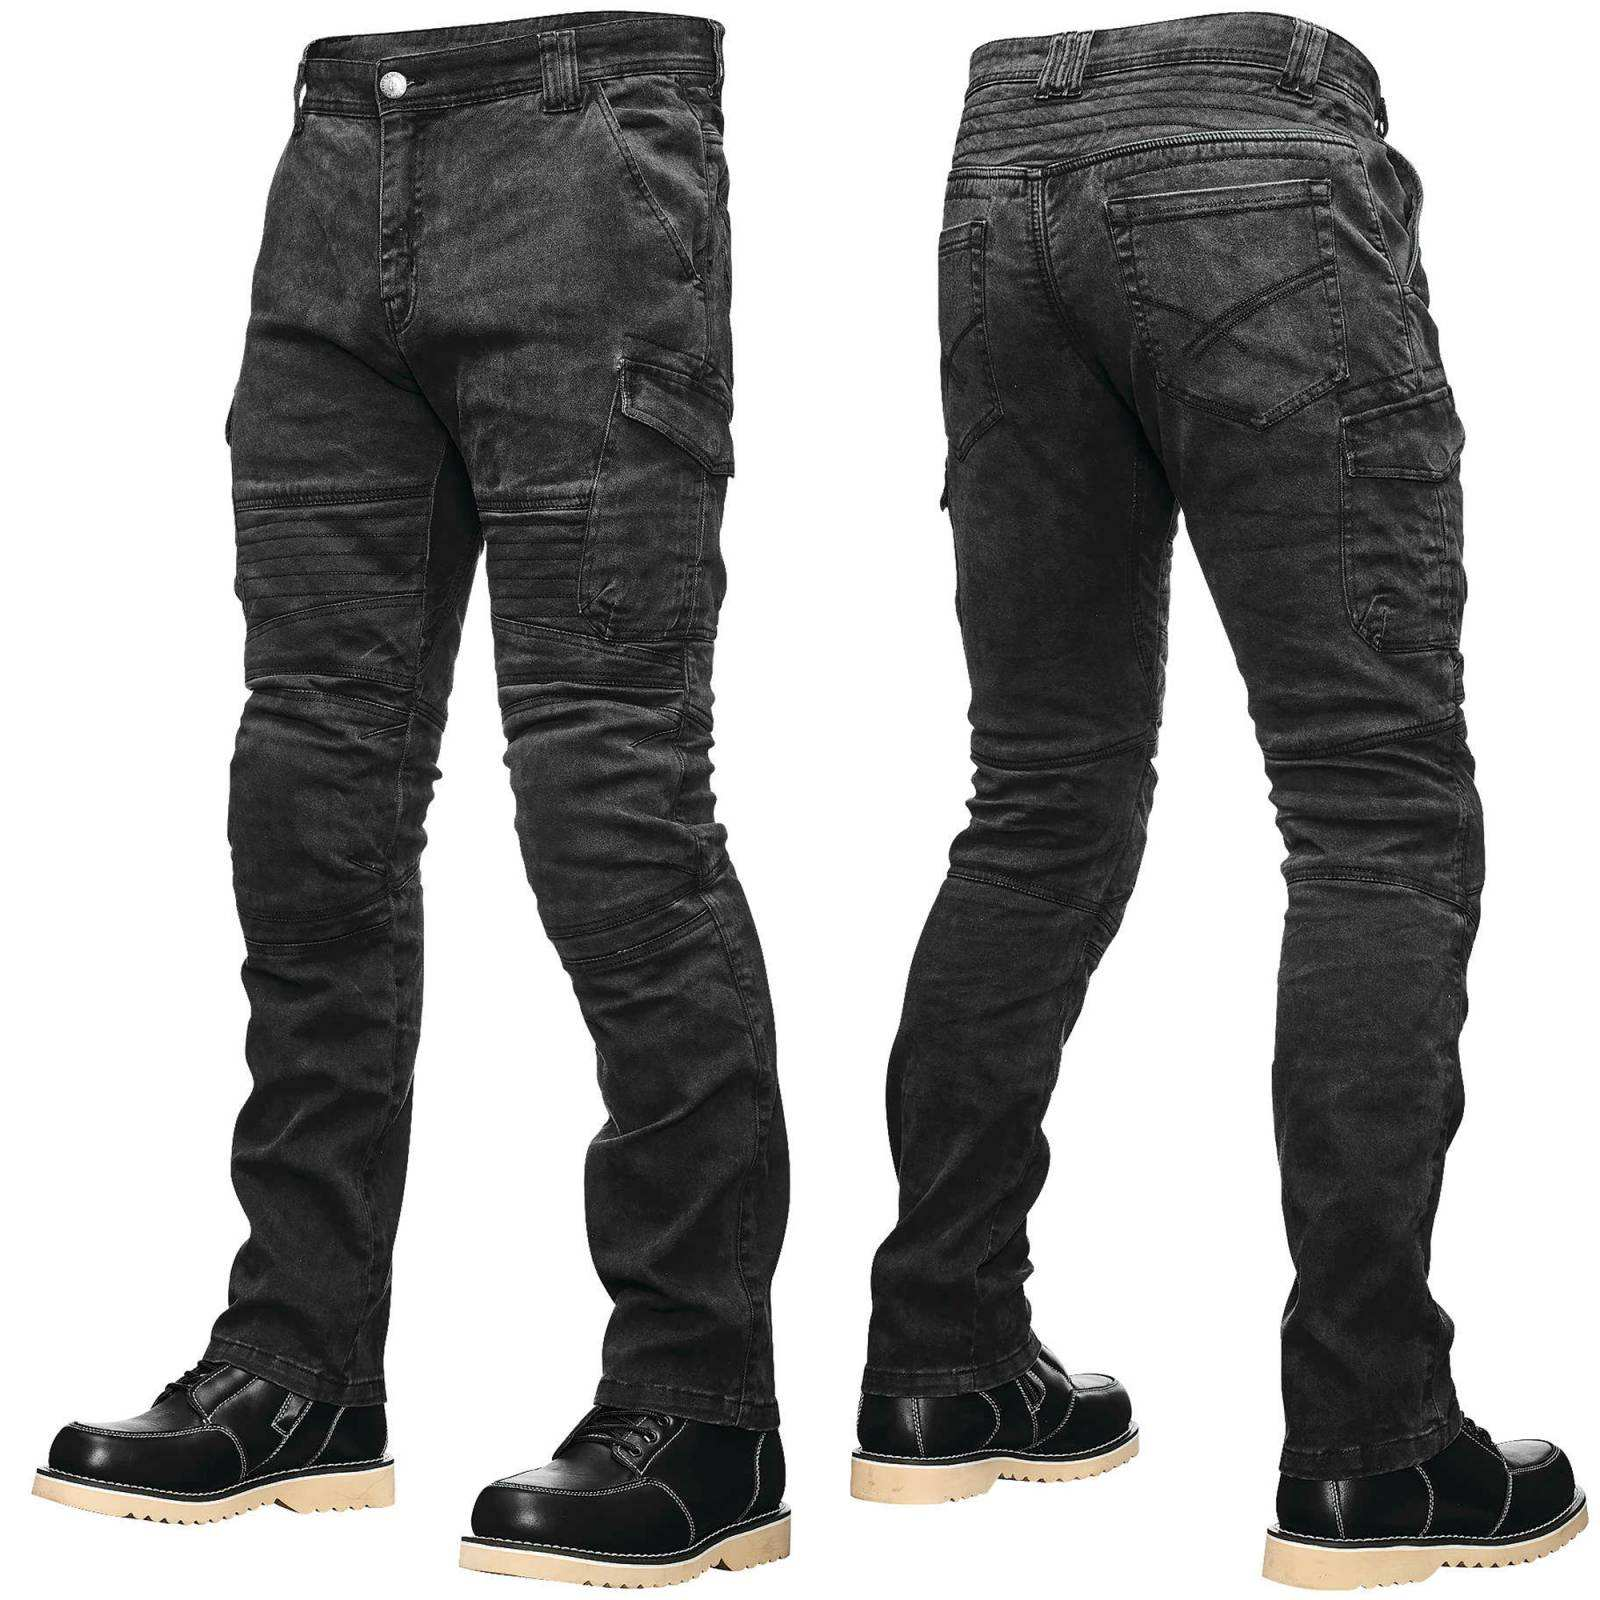 New Motorcycle Riding Jeans Pant Reinforced With Protective Lining On Impact Areas